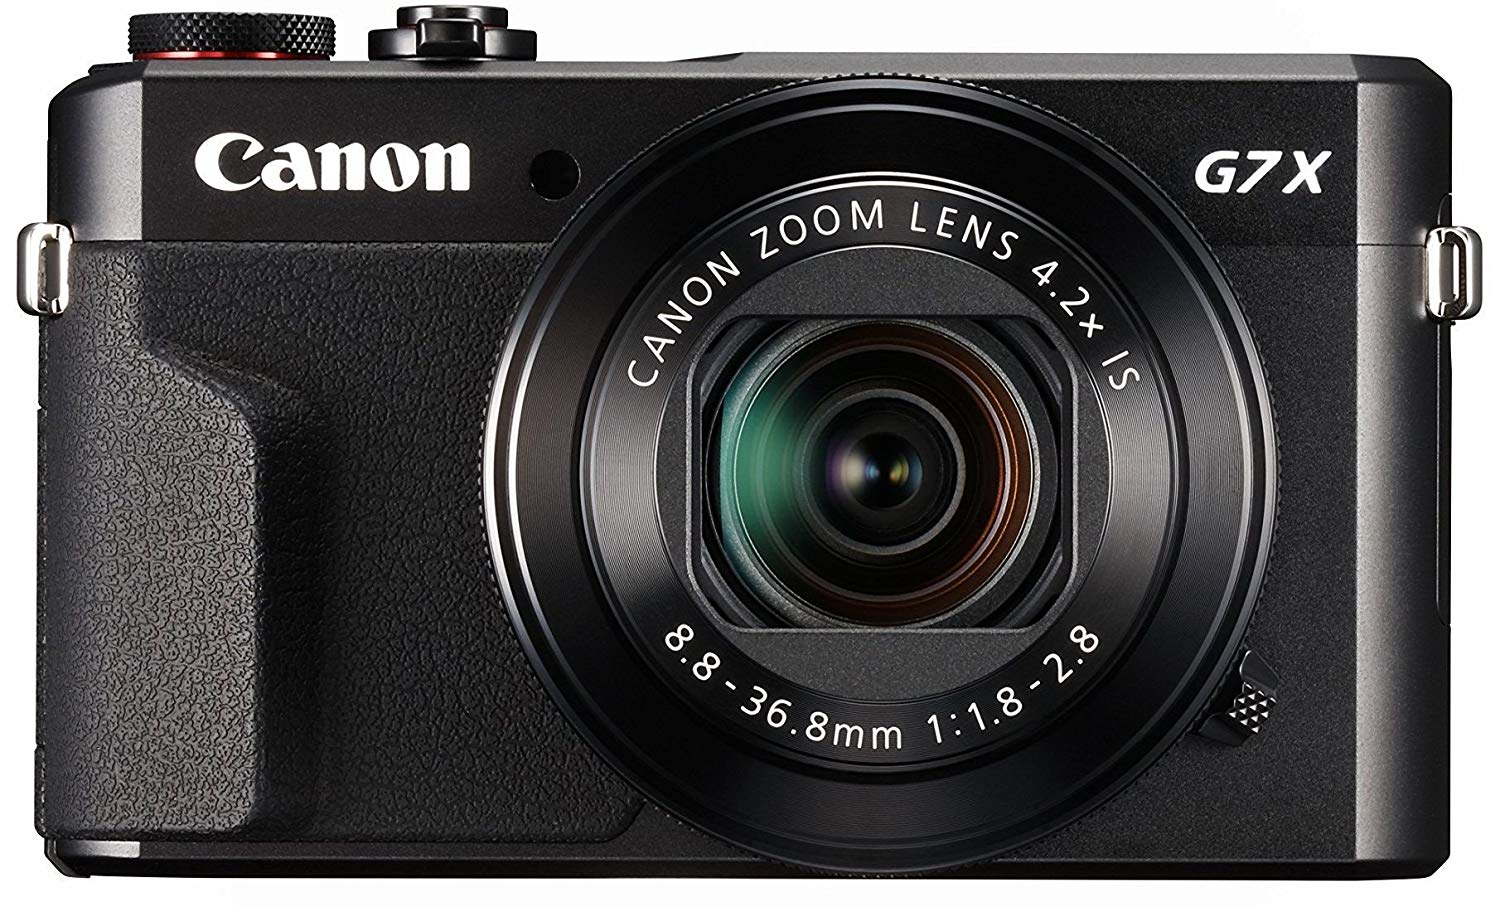 - If you're looking for a starter camera that takes great photos and stable videos, this Canon PowerShot G7x Digital Camera is for you. We have recommended this camera to so many friends and they love it.